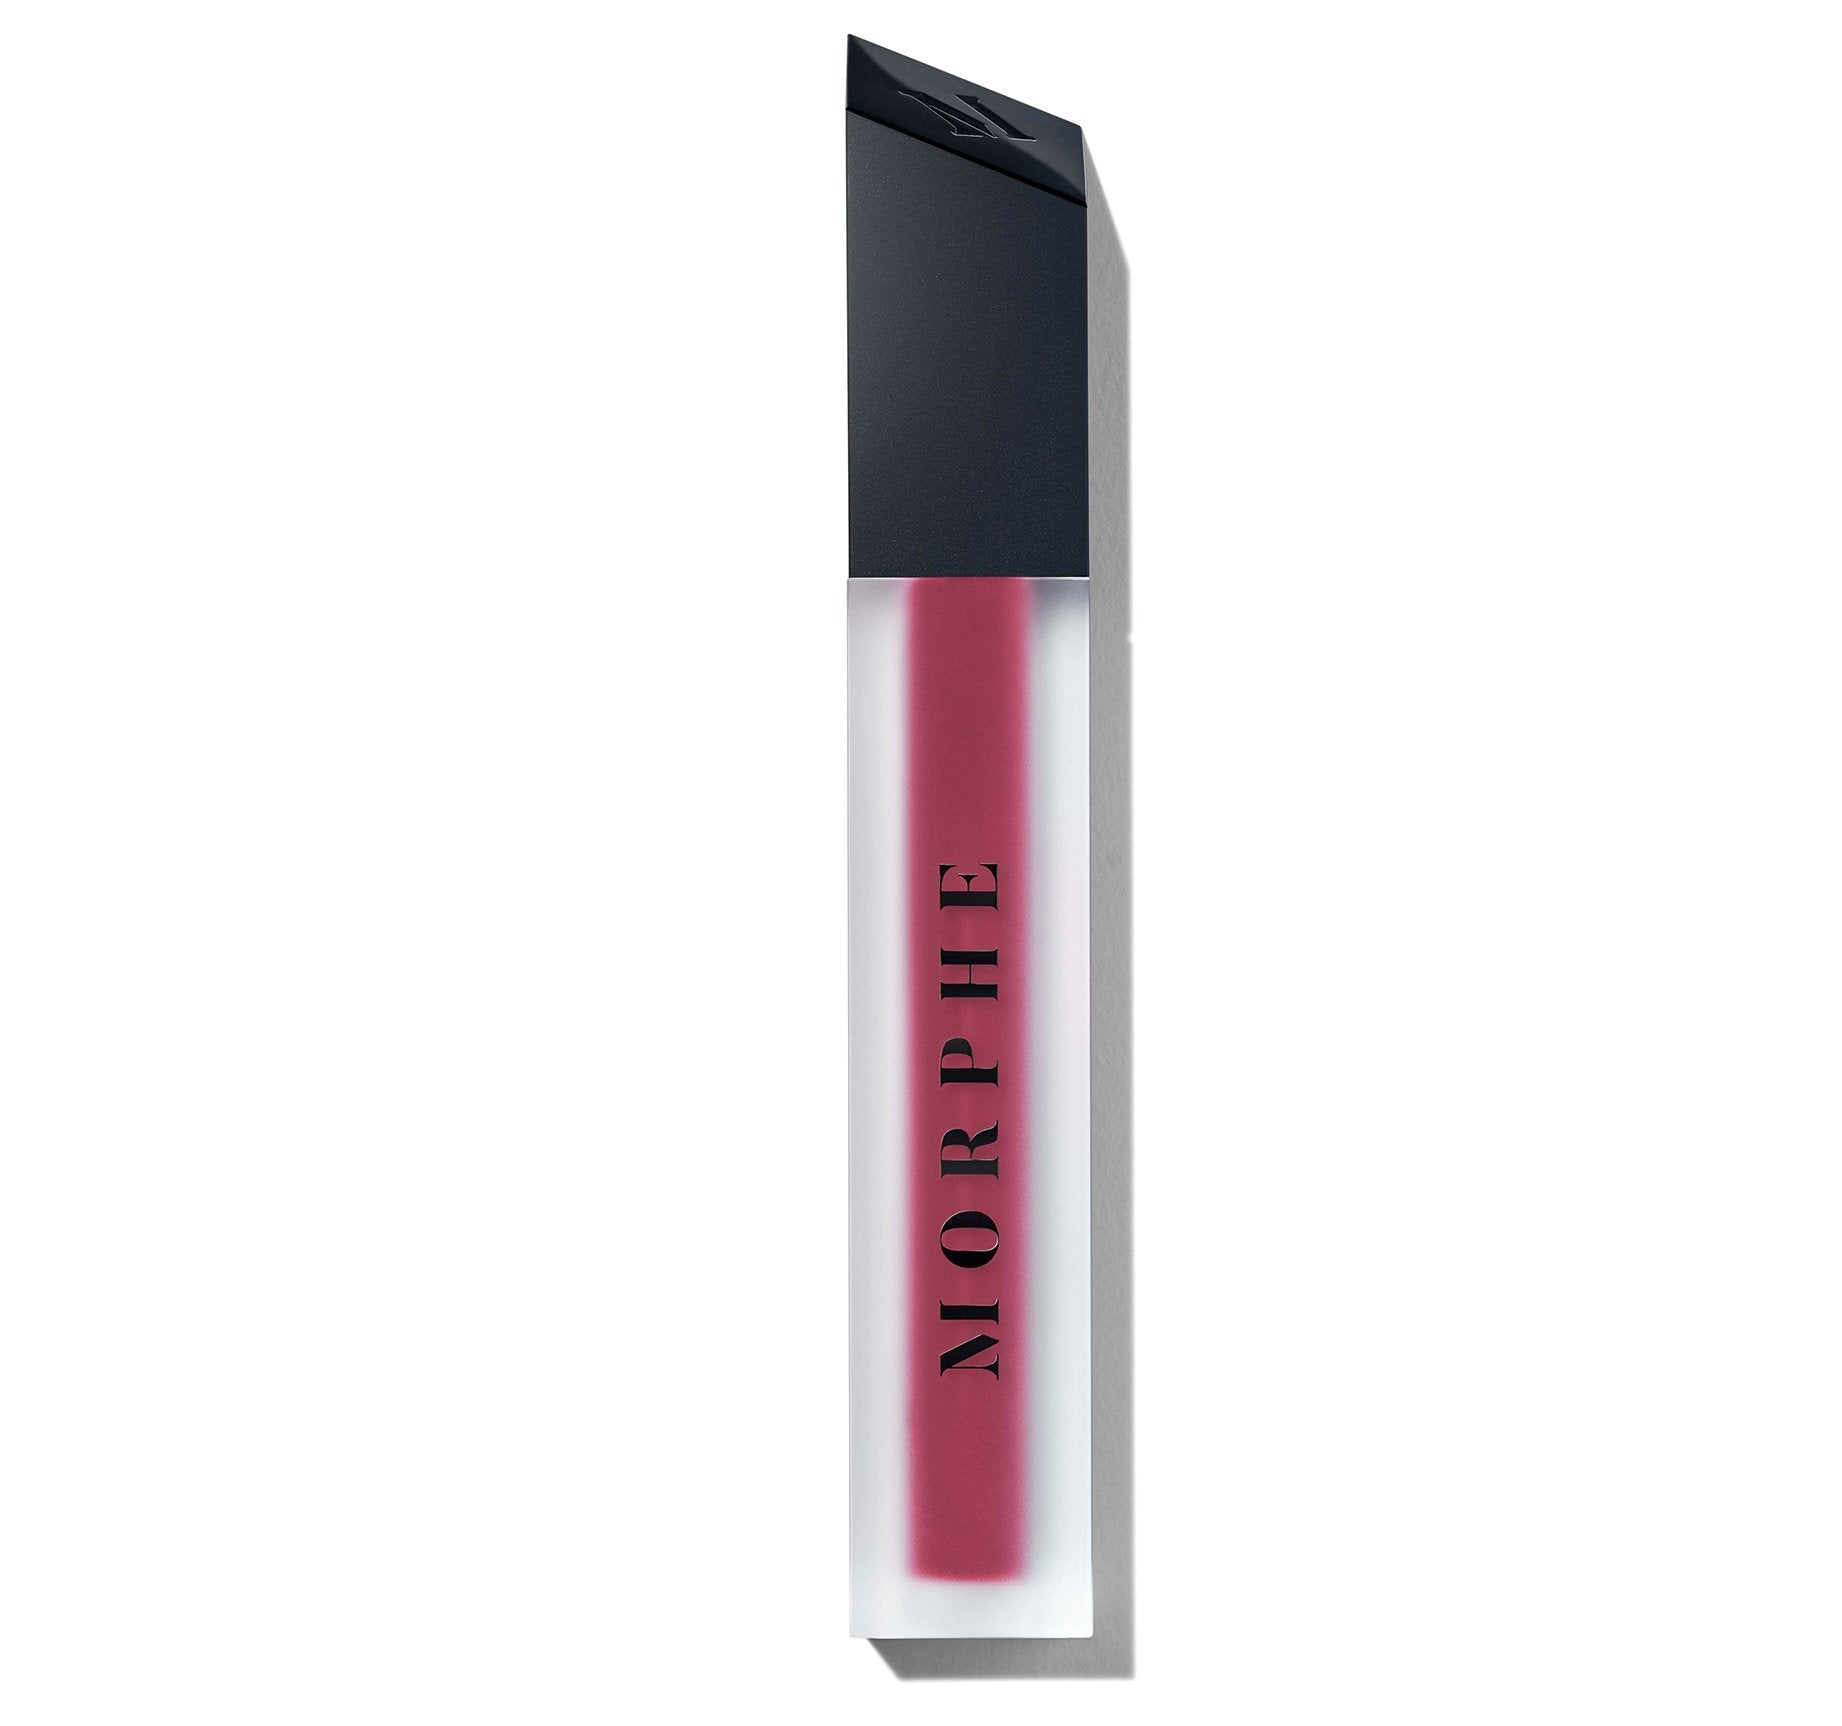 MATTE LIQUID LIPSTICK - MOOD, view larger image